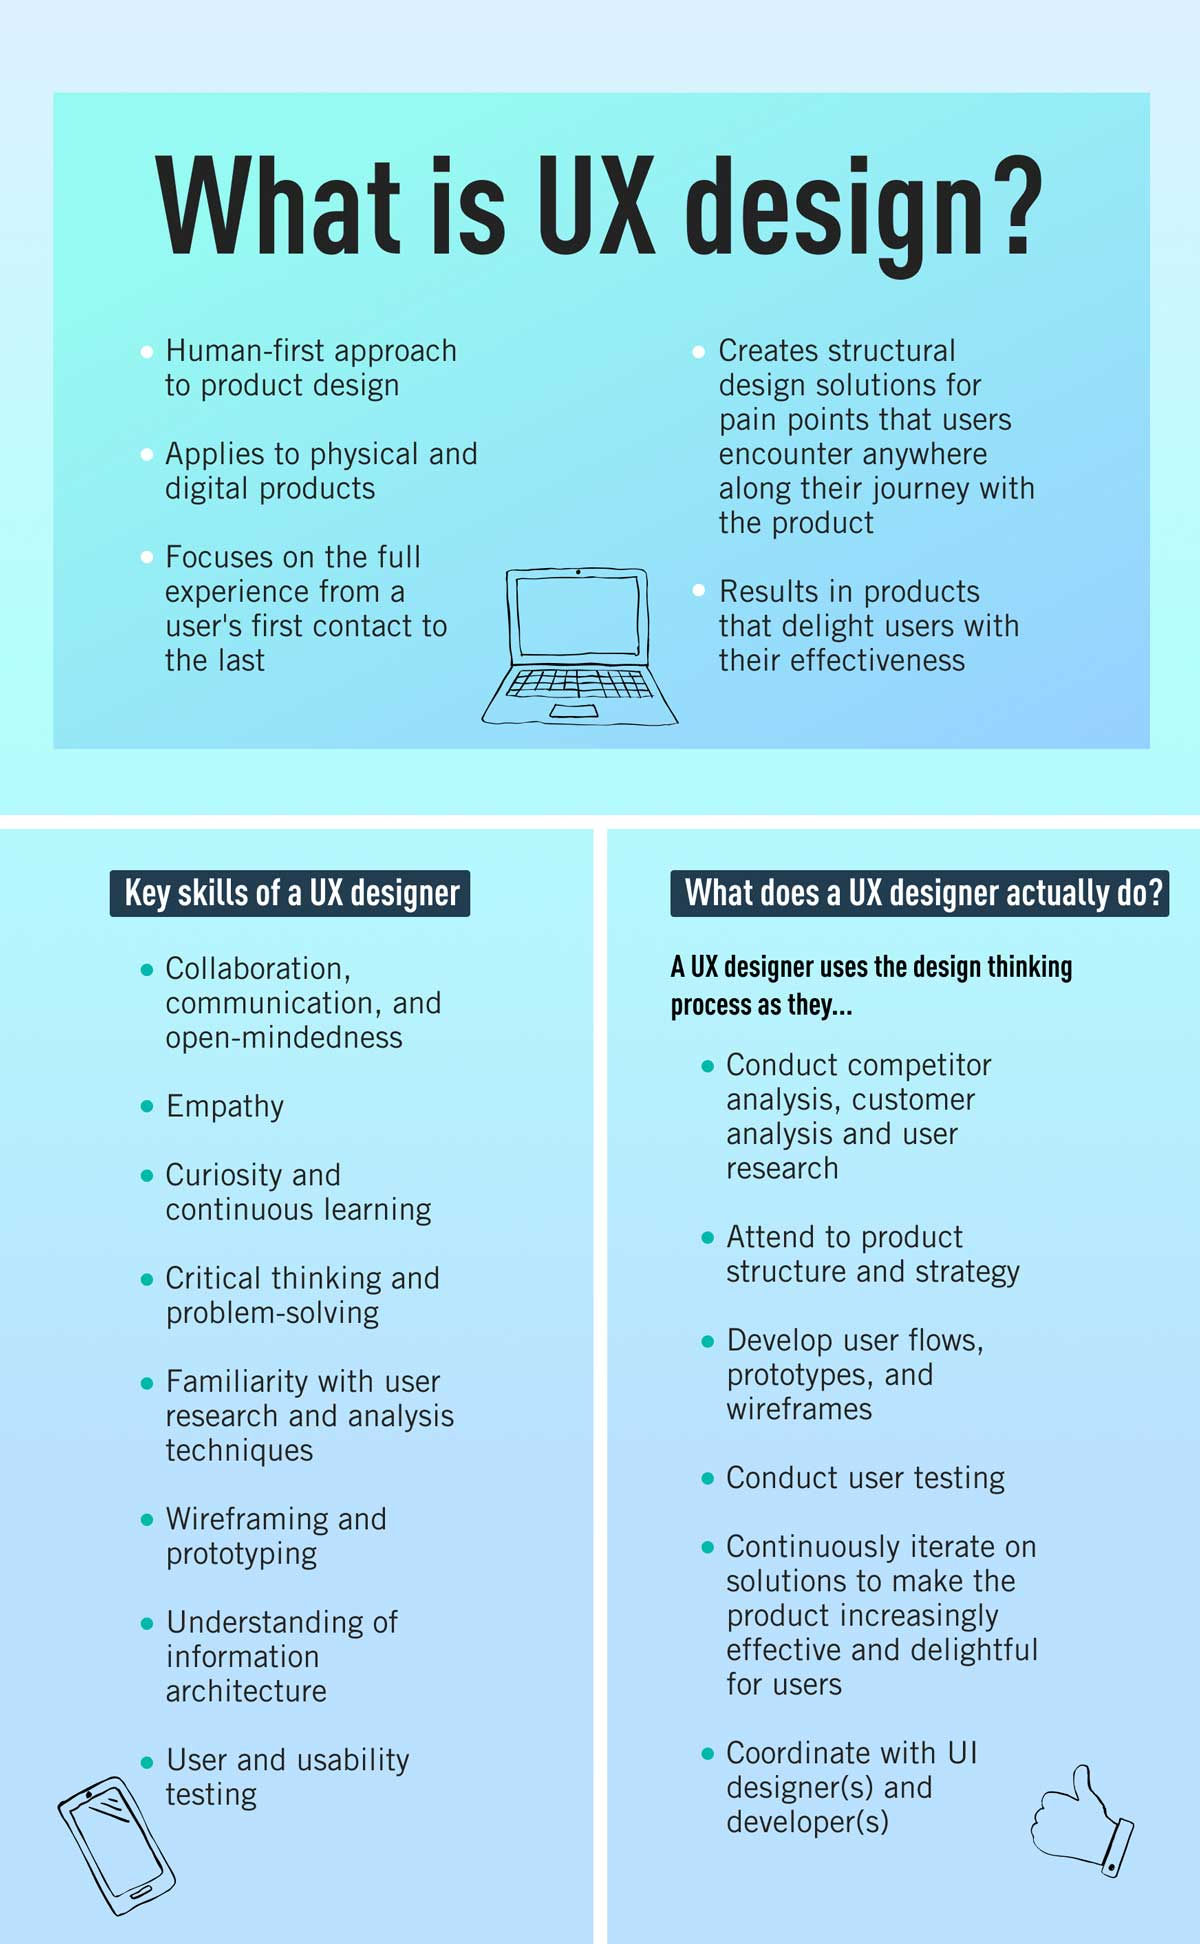 An infographic explaining what UX design is, and the key skills and tasks of a UX designer